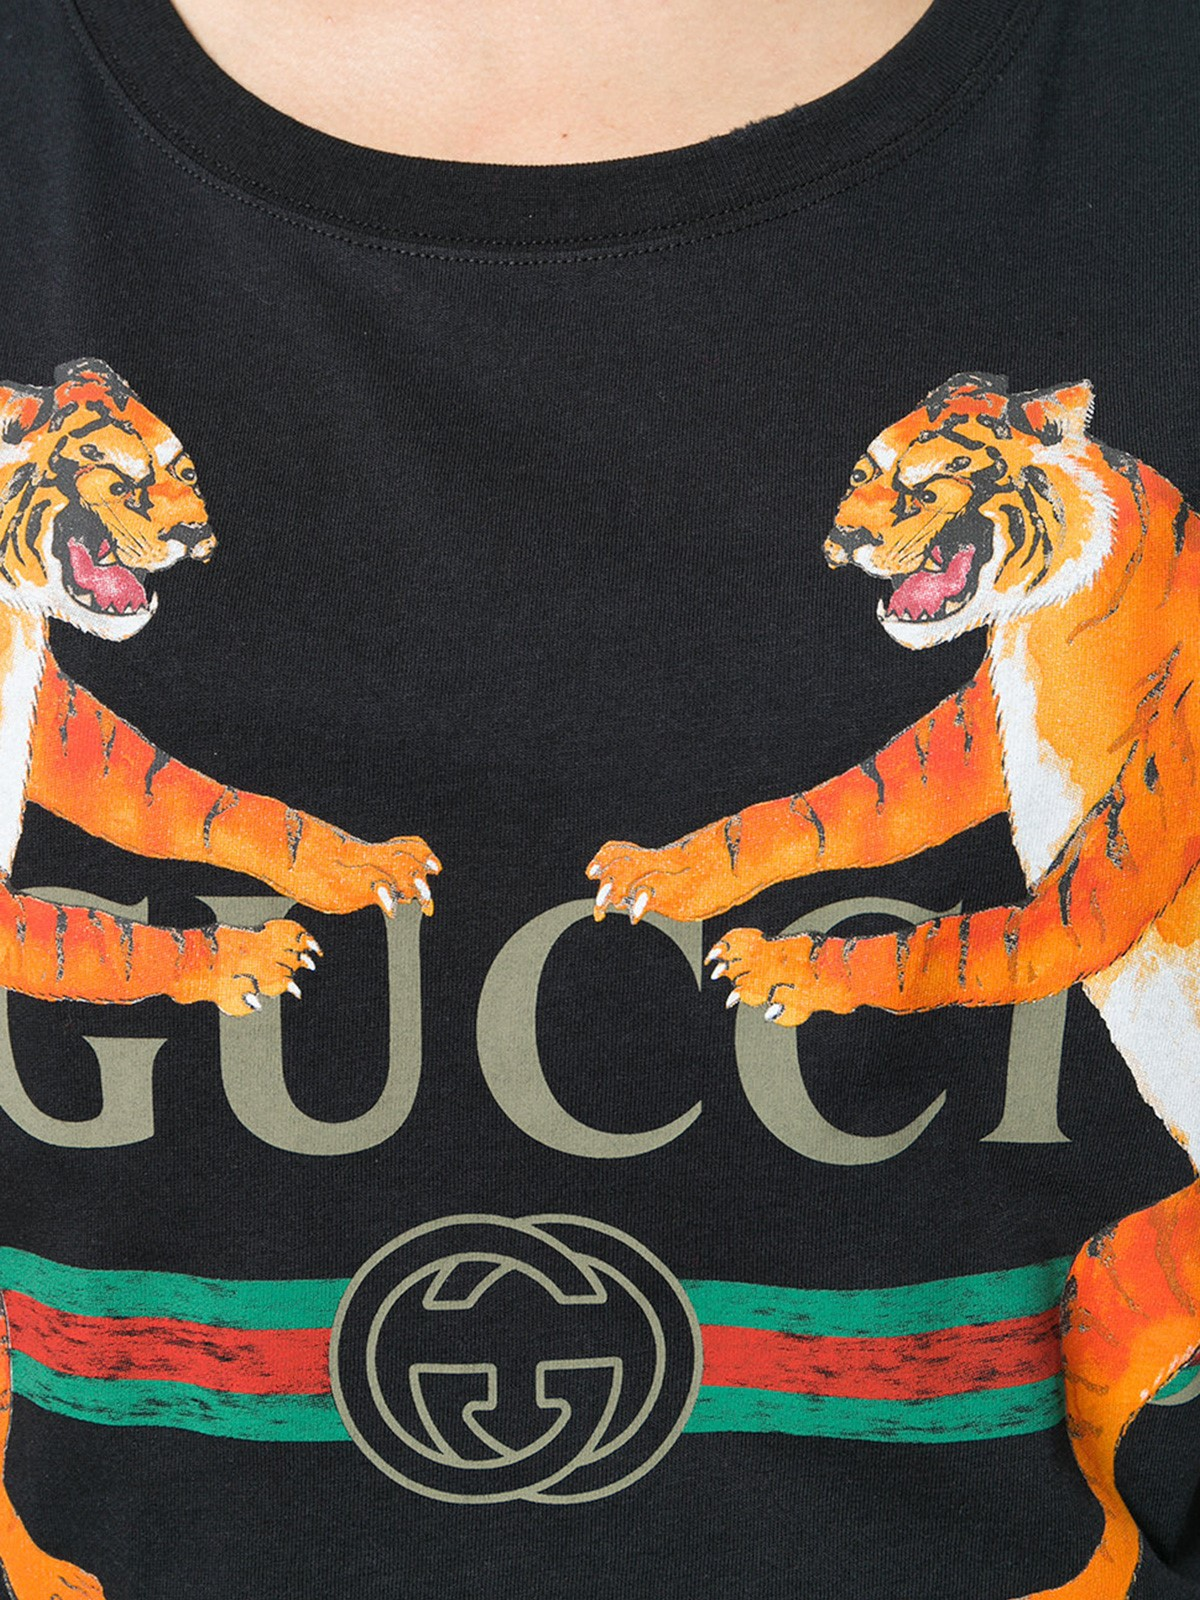 b36971d4 gucci TIGER PRINT T-SHIRT available on montiboutique.com - 21988